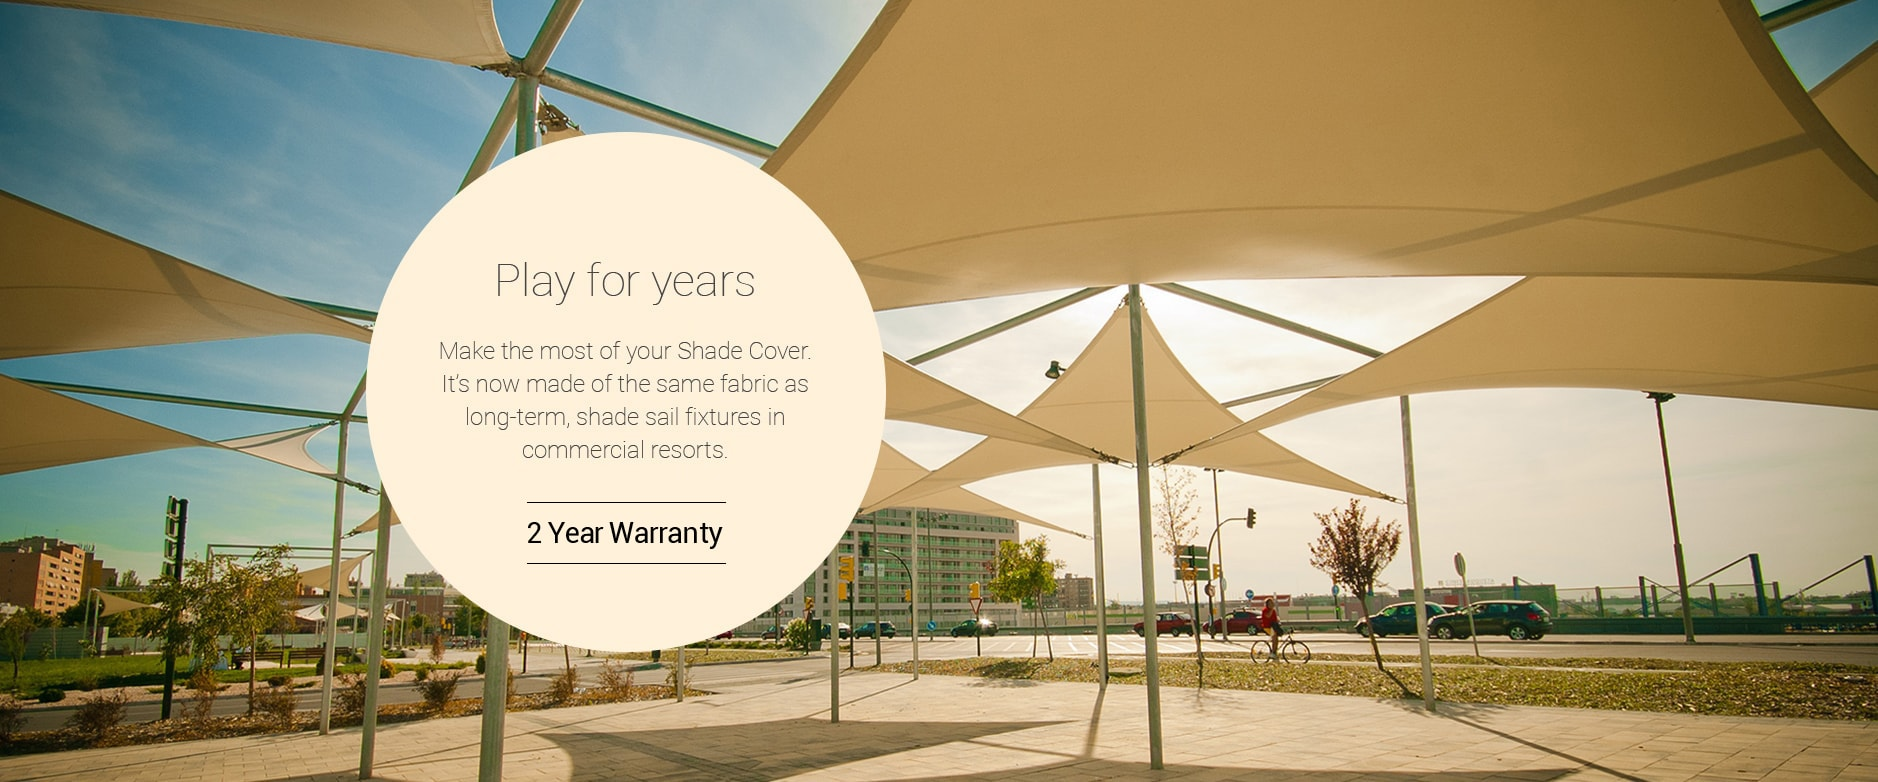 Our new Shade Covers are now made of the same fabric as long-term, shade sail fixtures in commercial resorts.